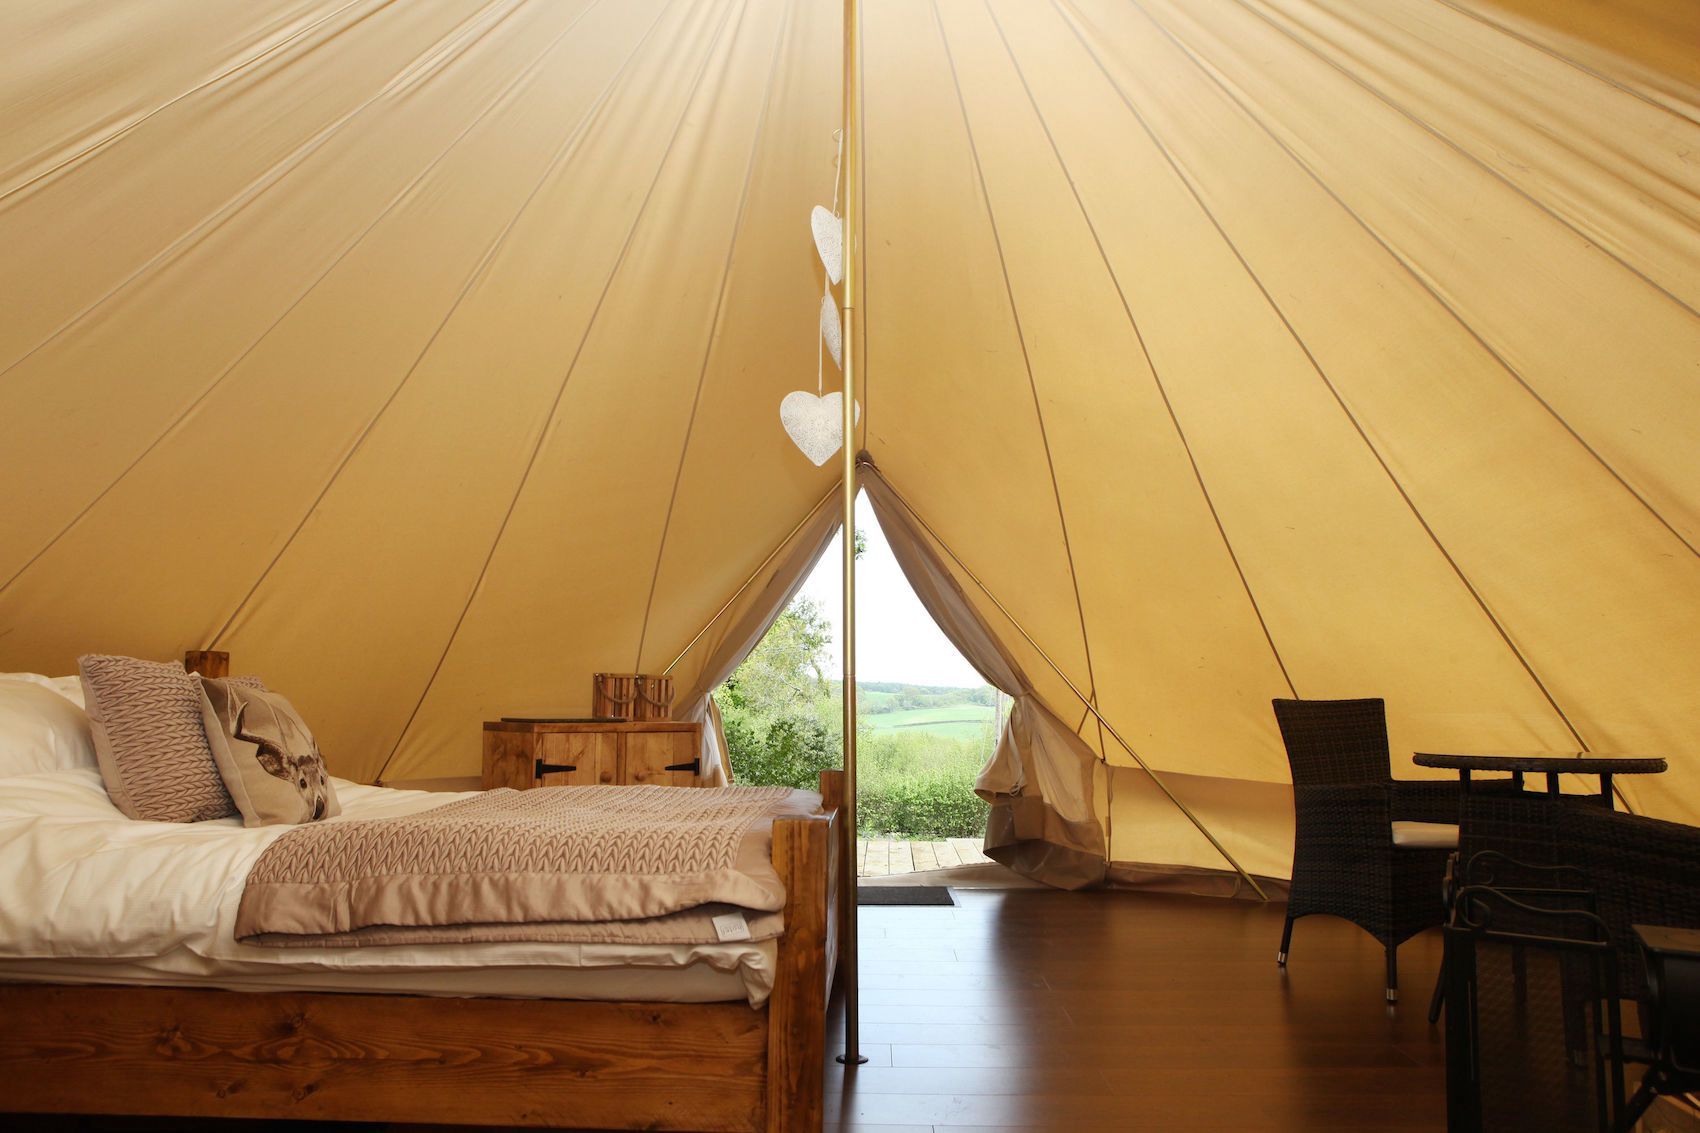 Glamping in Dorset – The best glamping locations in Dorset